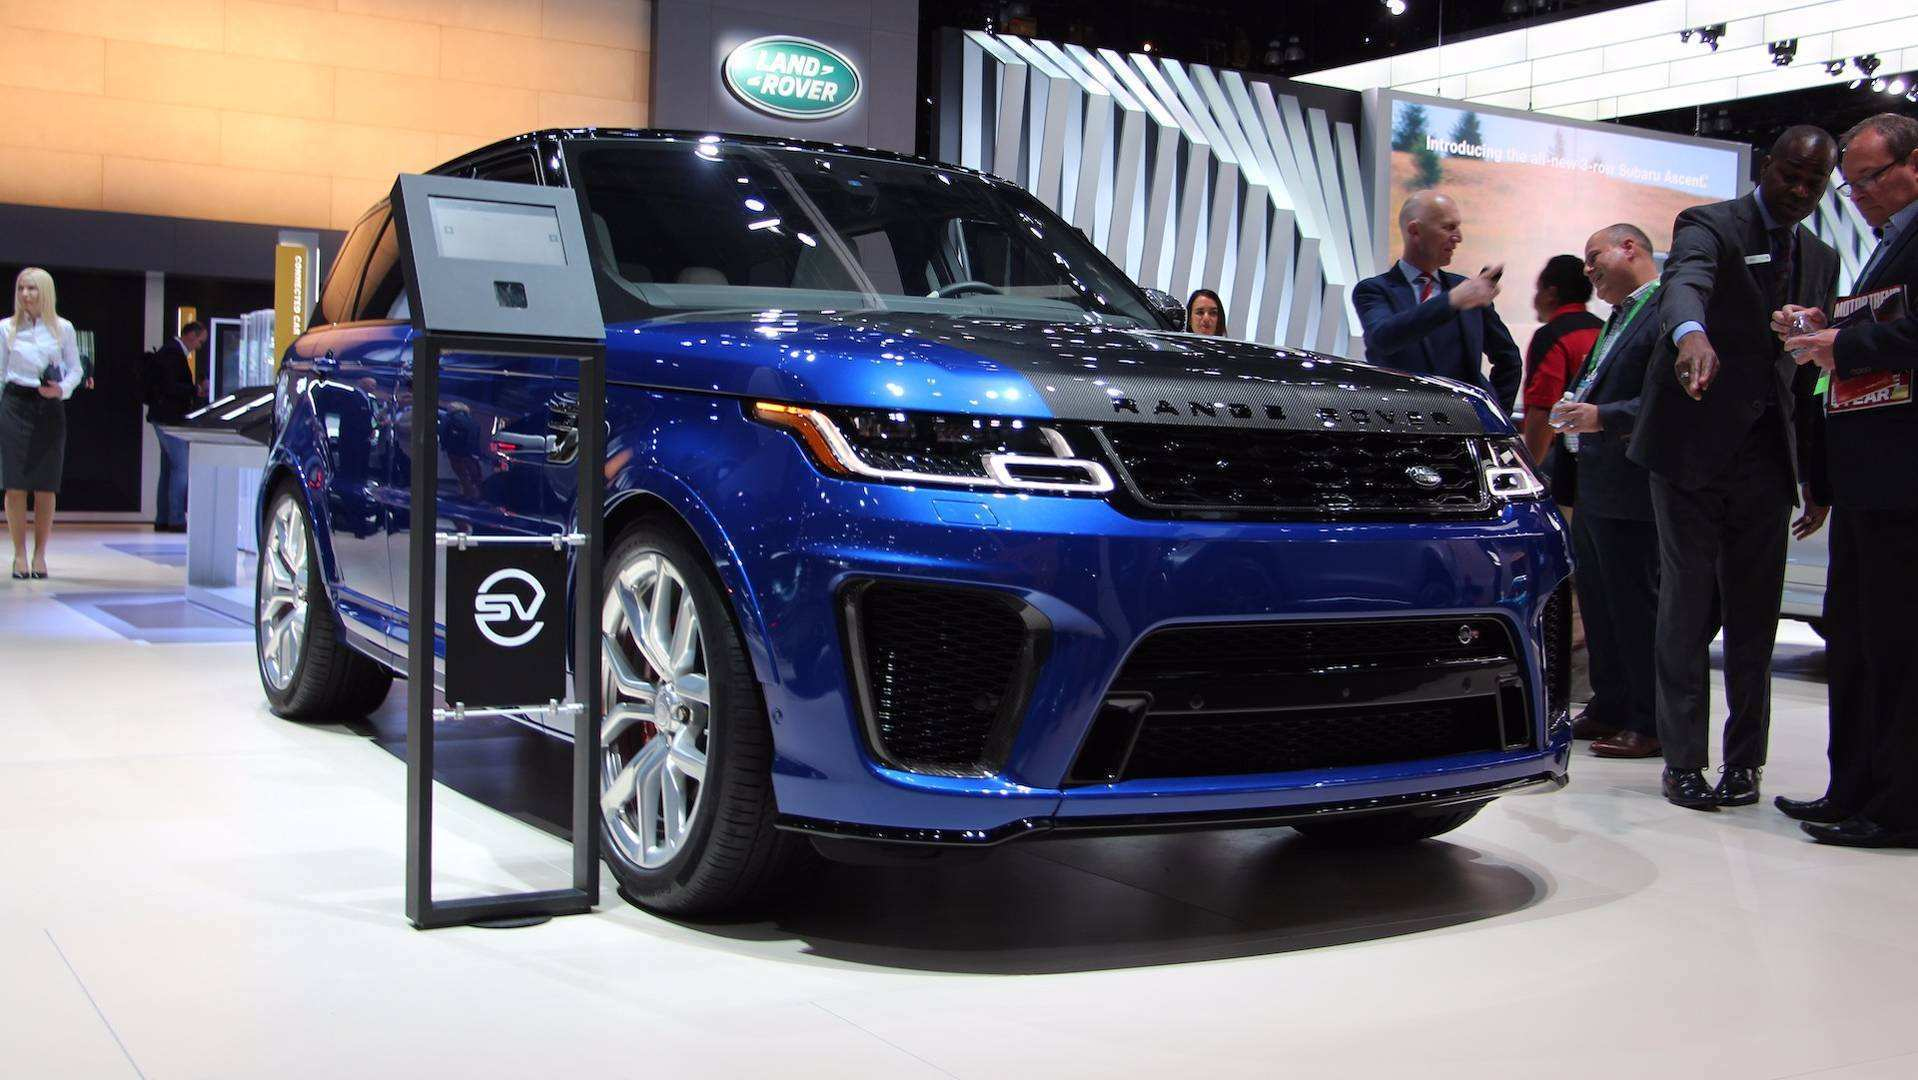 68 Great 2019 Land Rover Svr Photos for 2019 Land Rover Svr